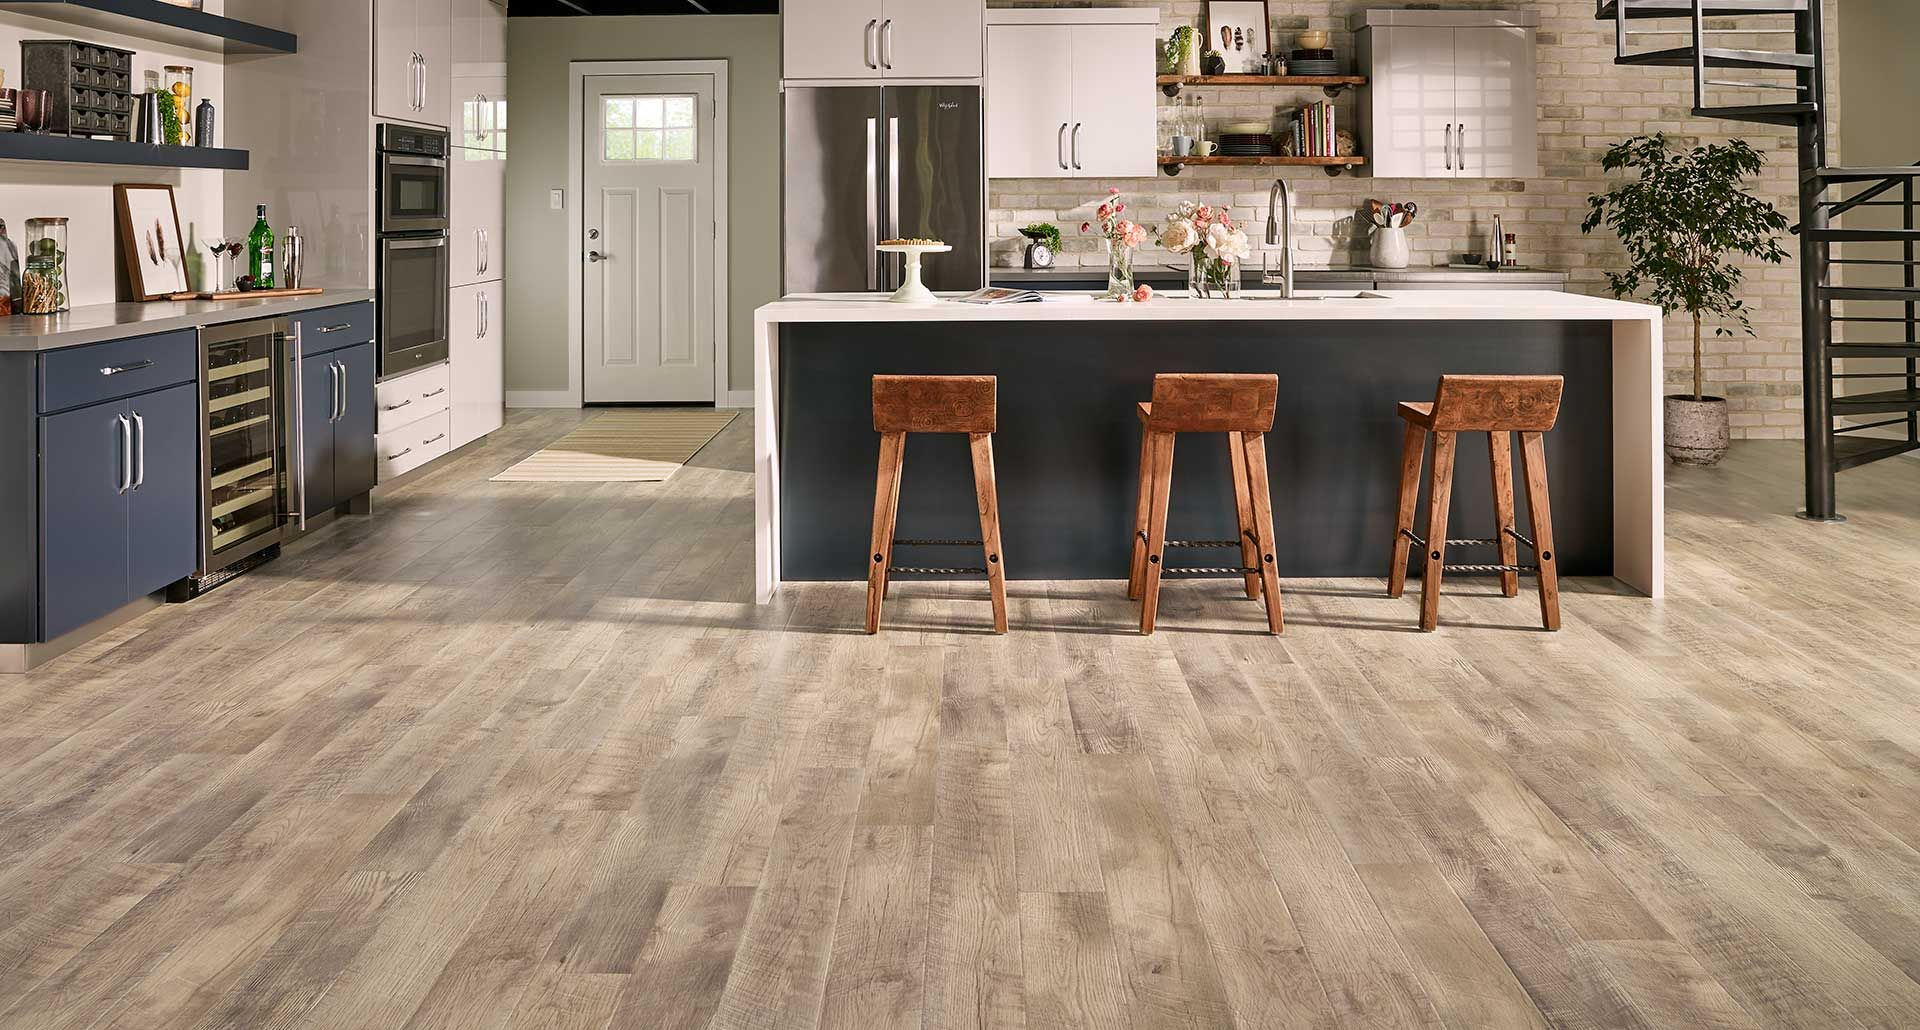 Southport Oak Natural Laminate Floor Beige Oak Wood